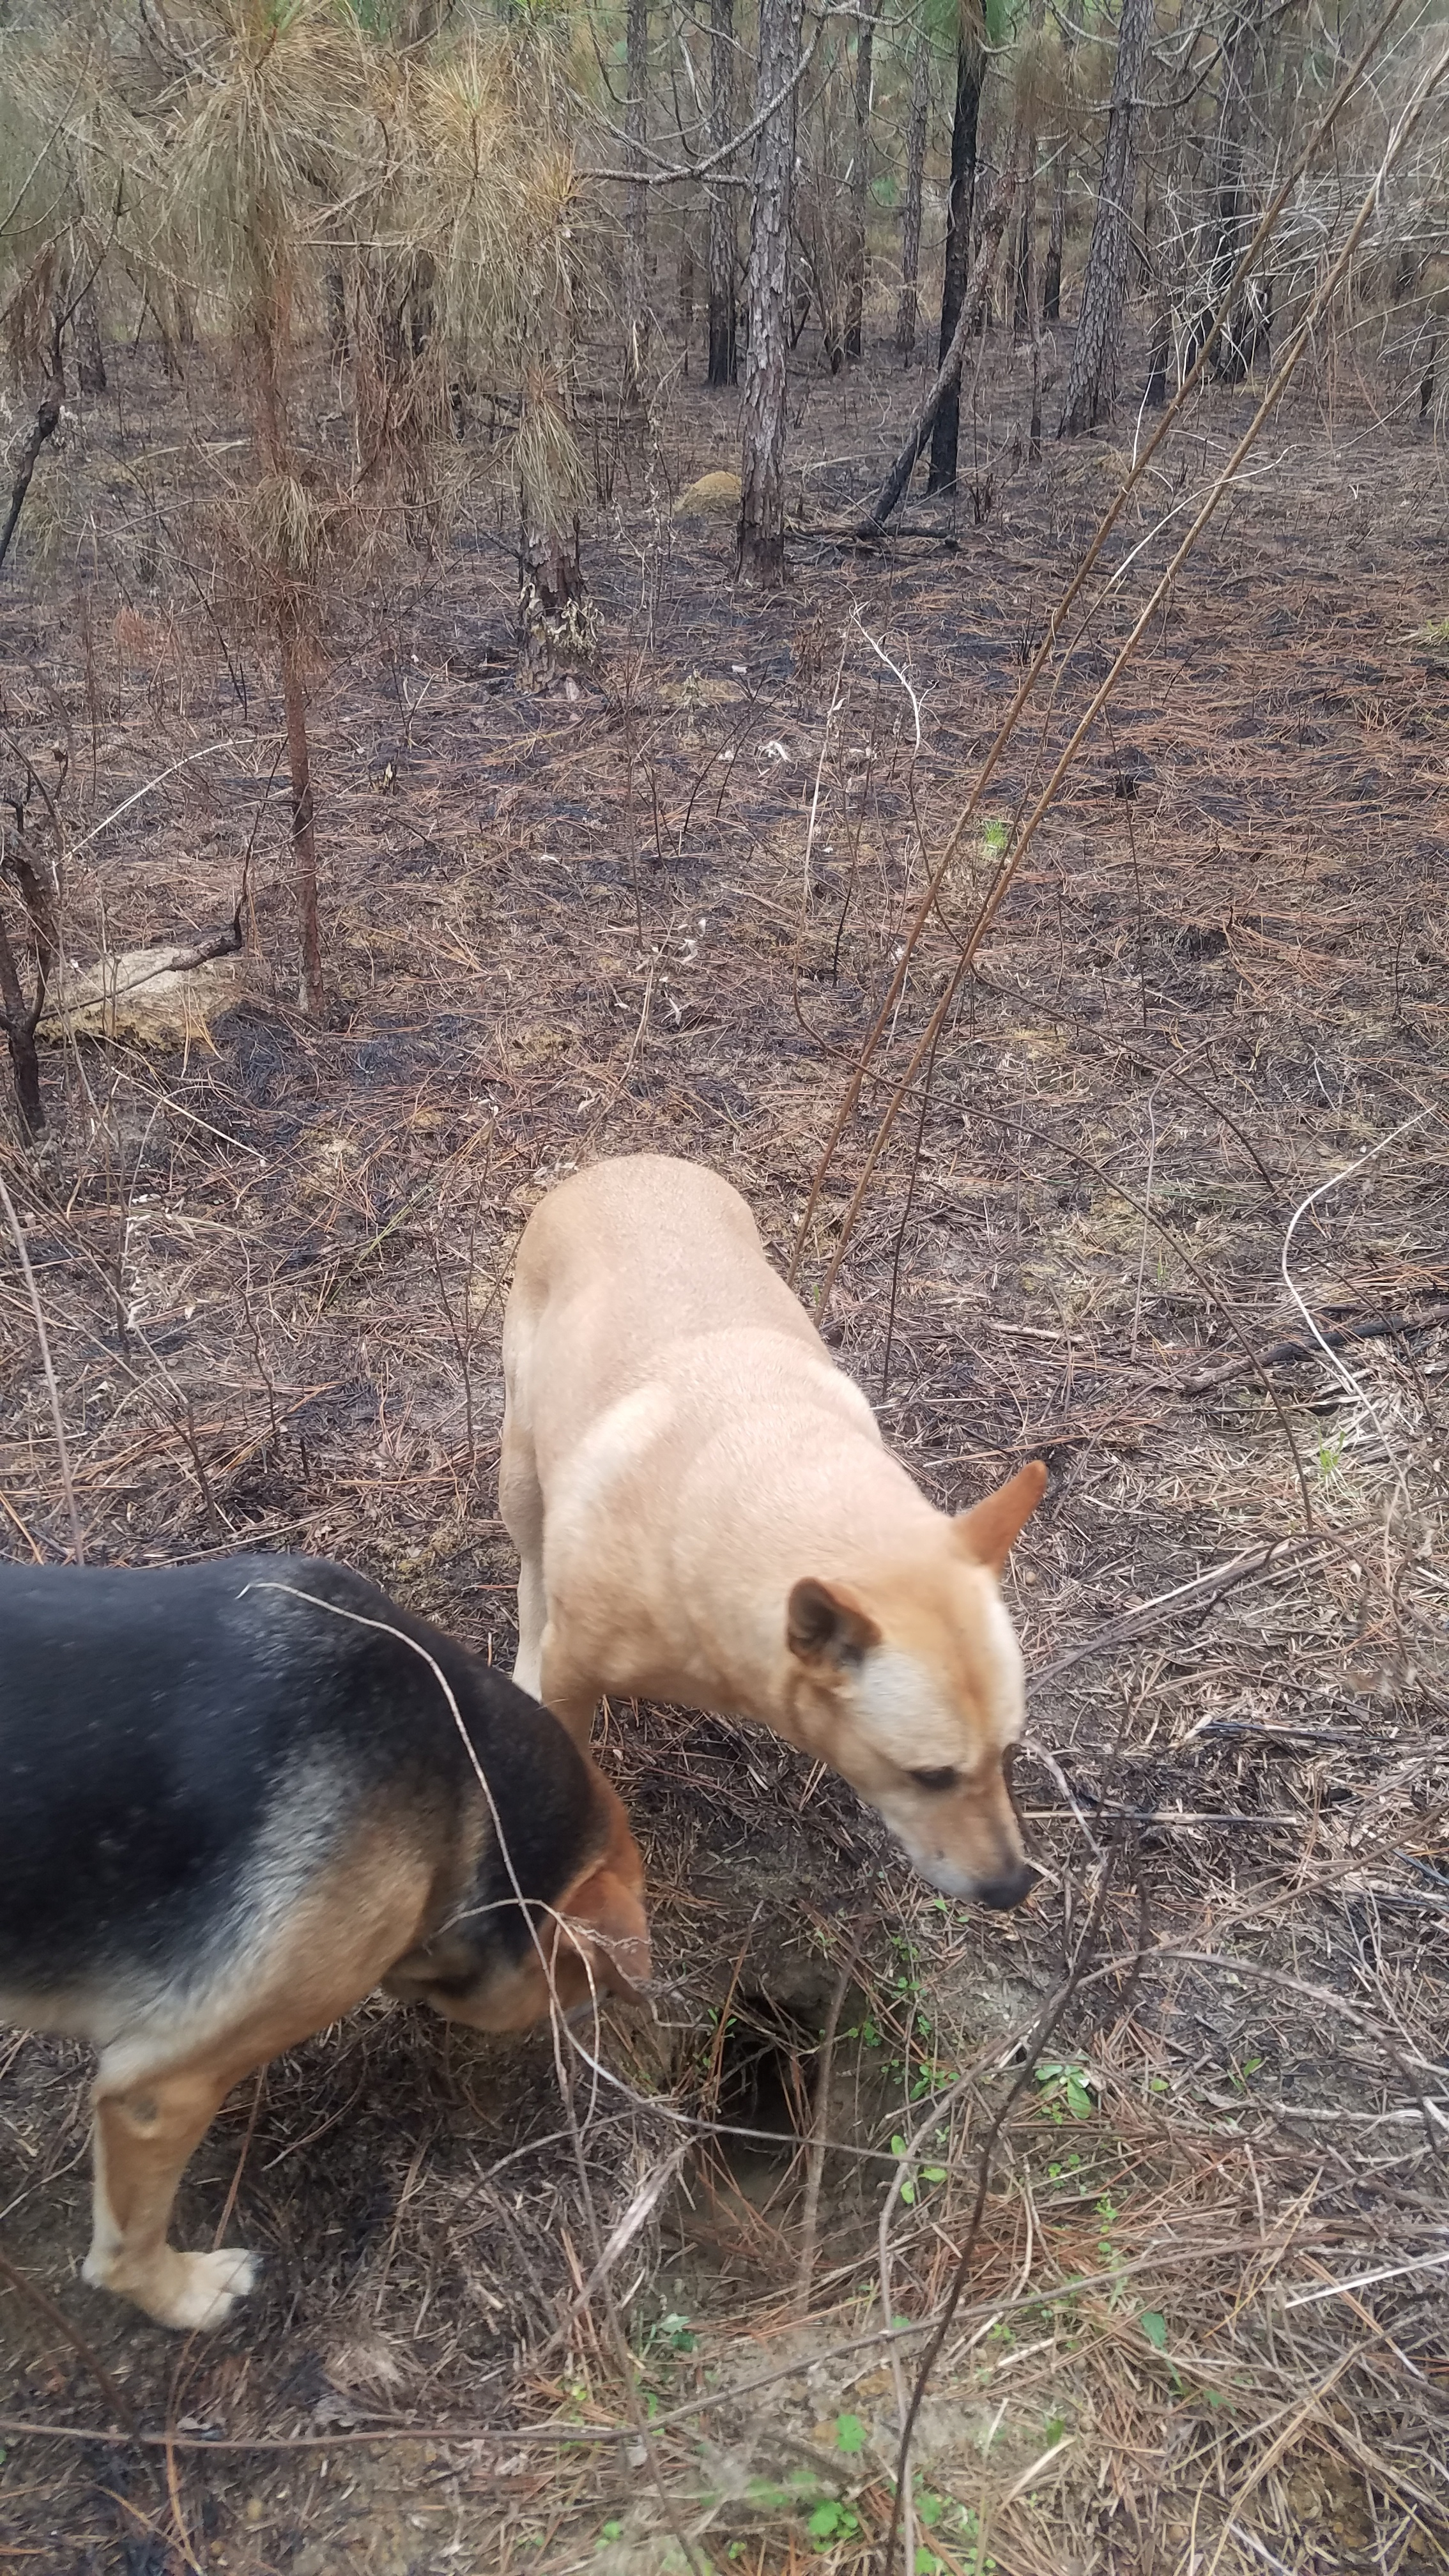 2268x4032 With dogs, Gopher hole, in Gopher tortoise burrow in burned longleaf, with dogs, by John S. Quarterman, for OkraParadise.com, 27 January 2019